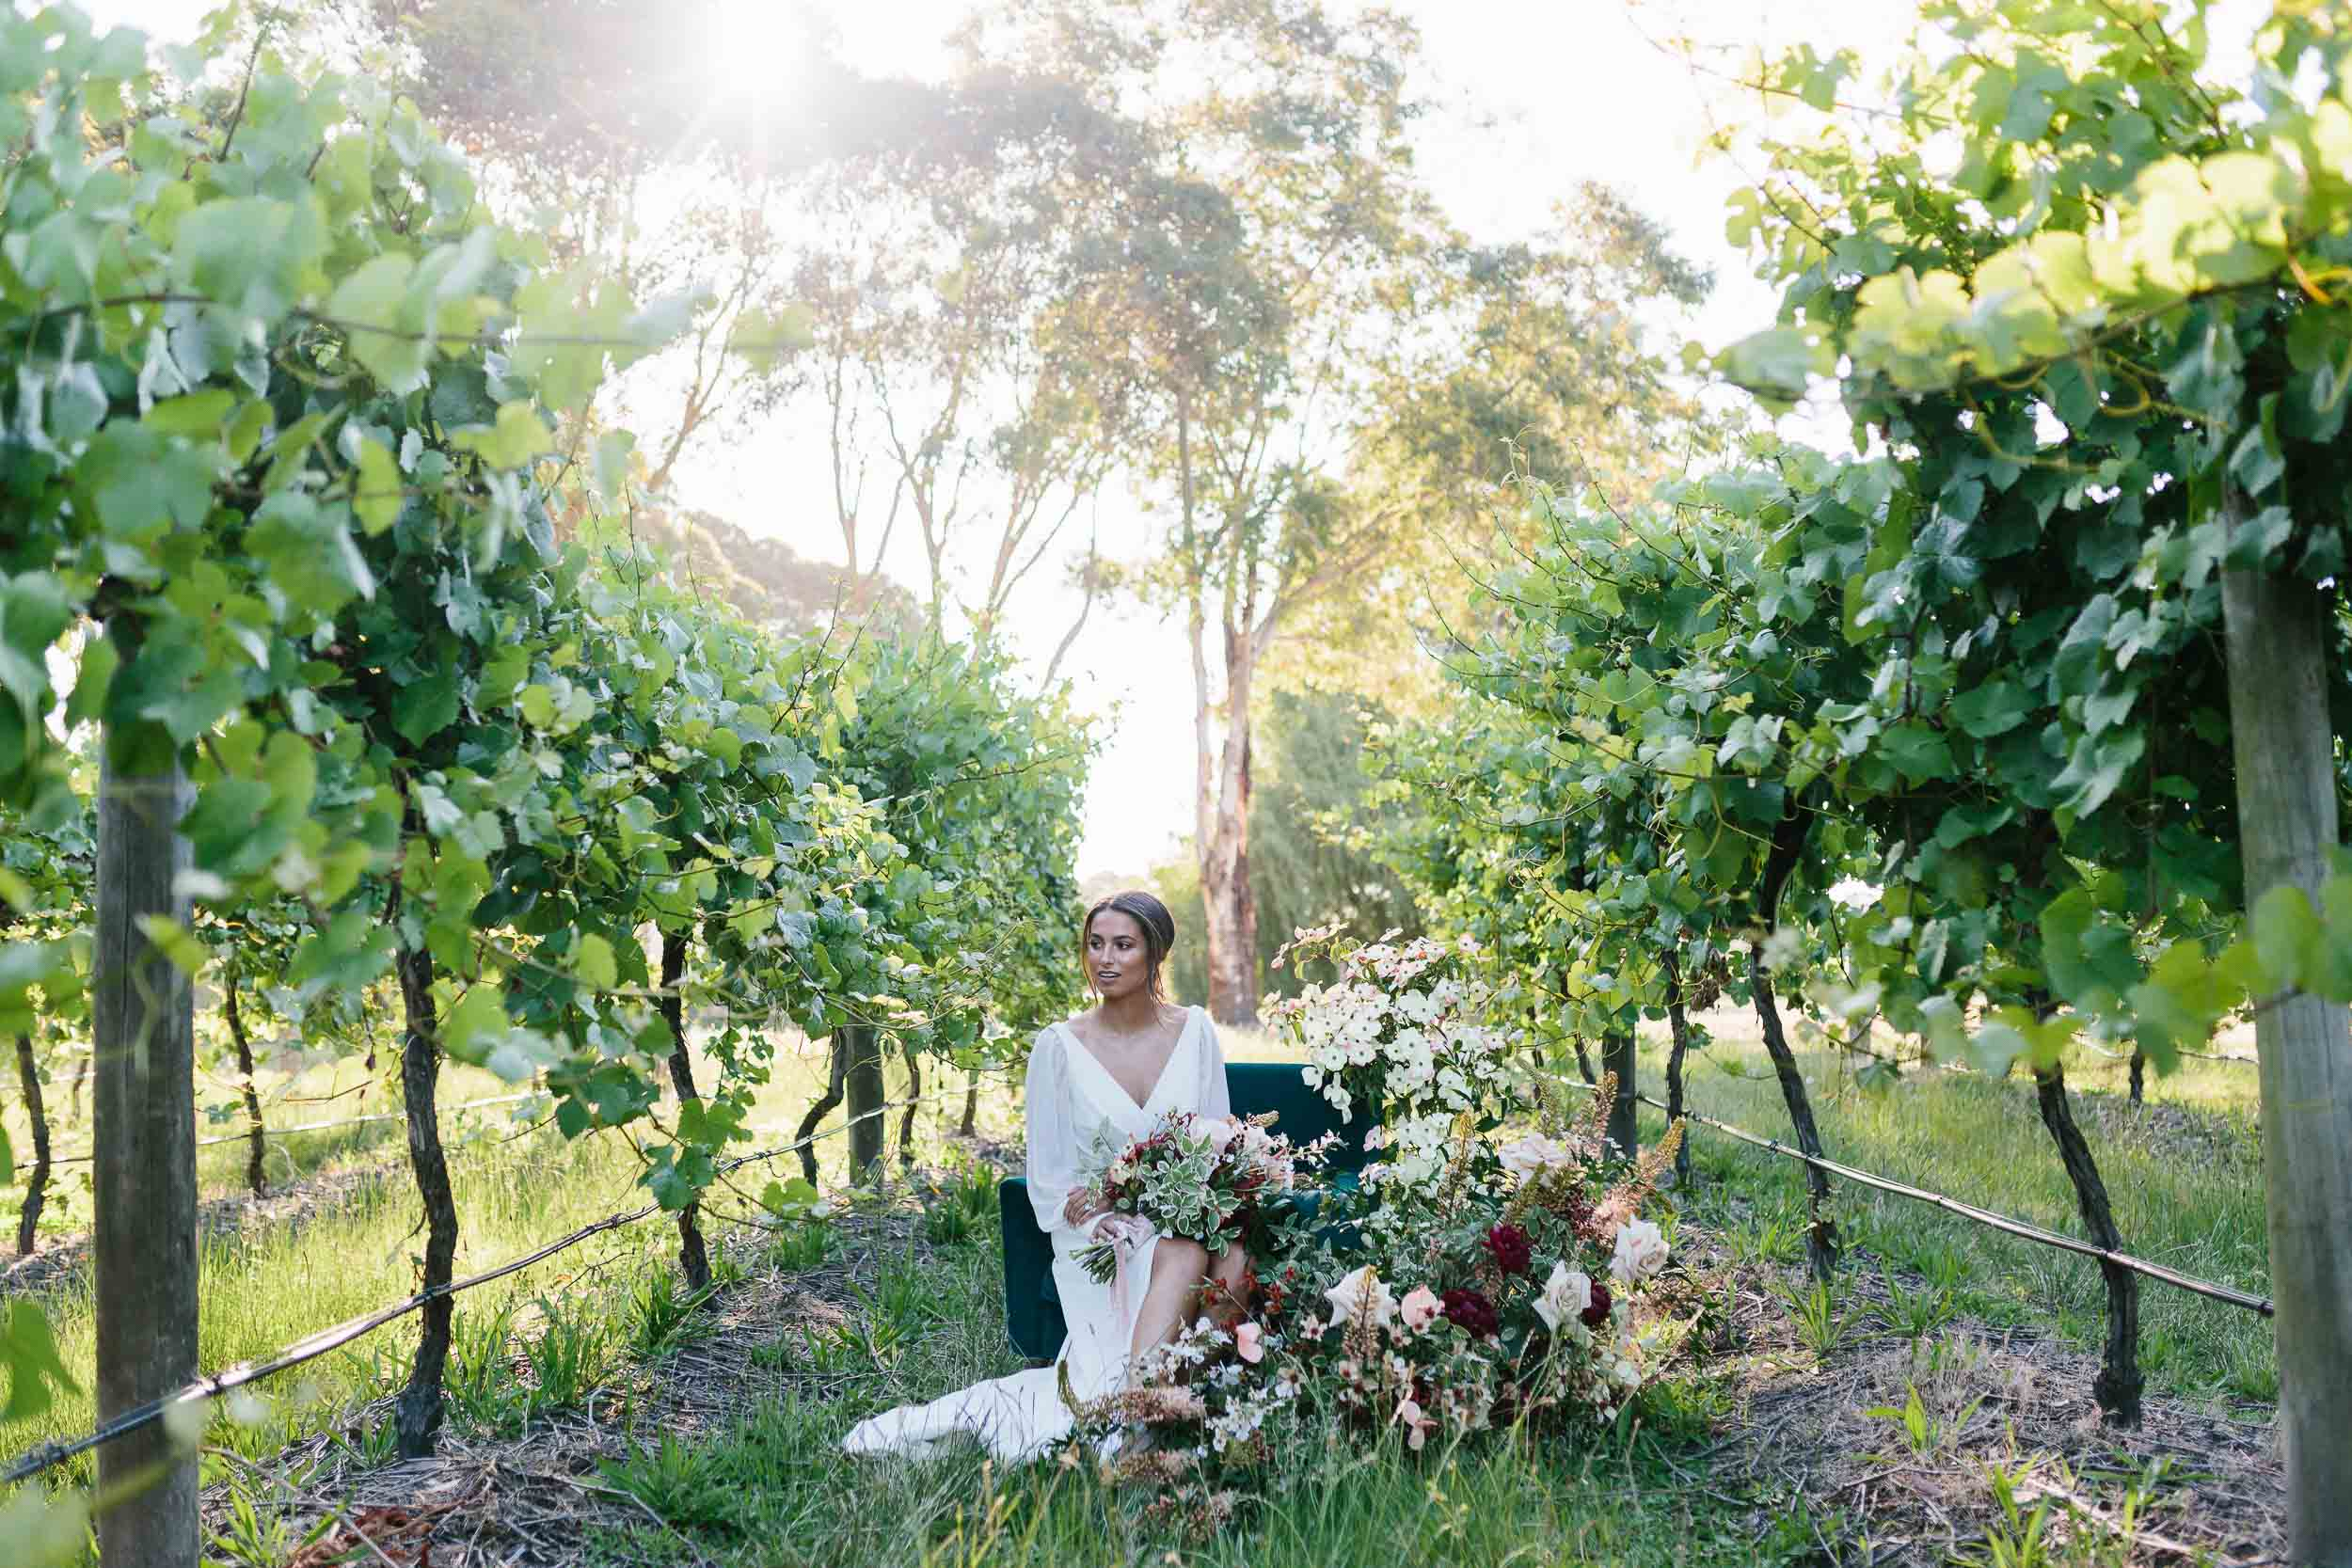 Kas-Richards-Wedding-Ediorial-Photographer-Mornington-Peninsula-Winery-Wedding-Karen-Willis-Holmes-Gown-Pop-up-with-Style-Planners-11.jpg